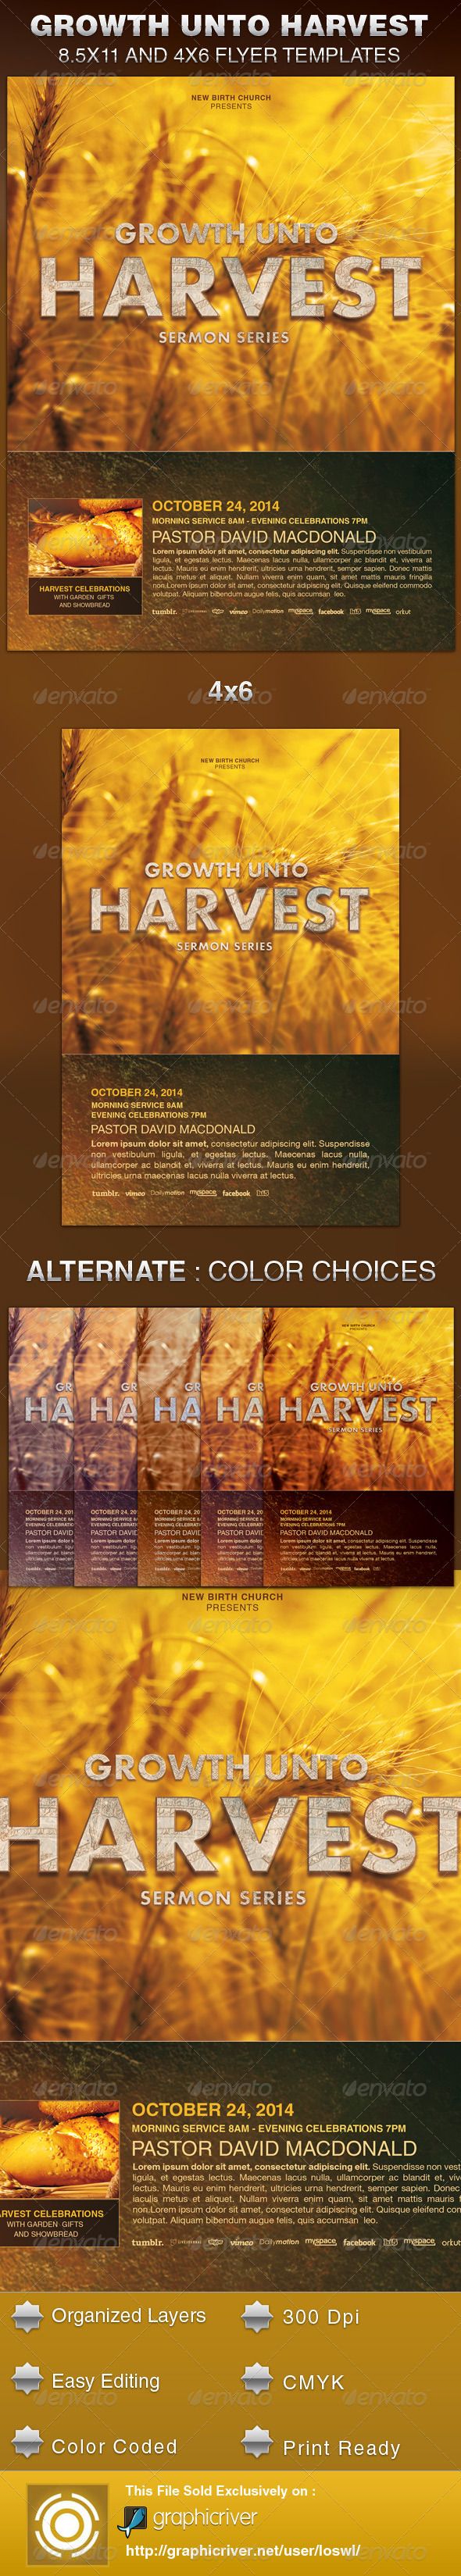 GraphicRiver Growth unto Harvest Church Flyer Template 6001484